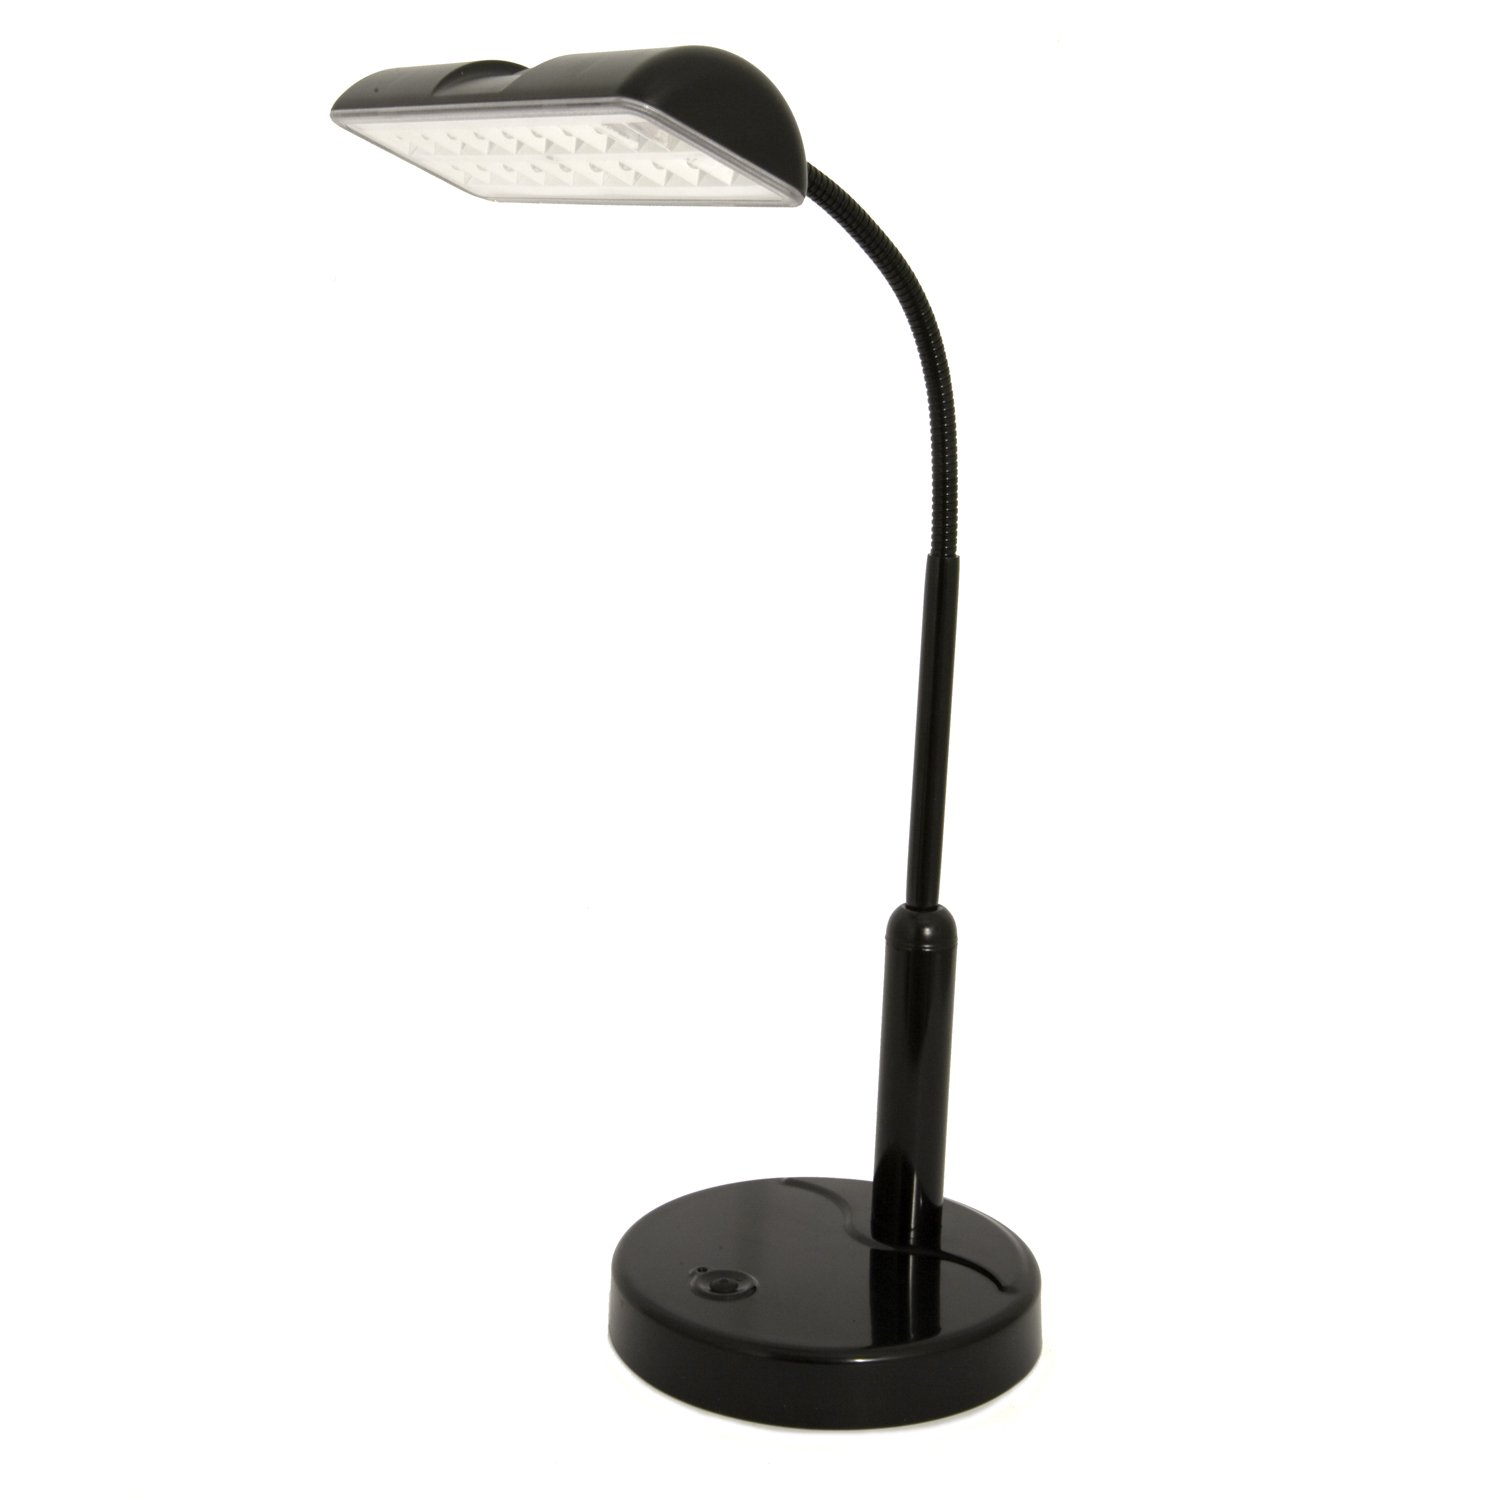 Light Accents Battery Powered Desk Lamp Super Bright LED's with Adjustable Metal Goose Neck (Black)